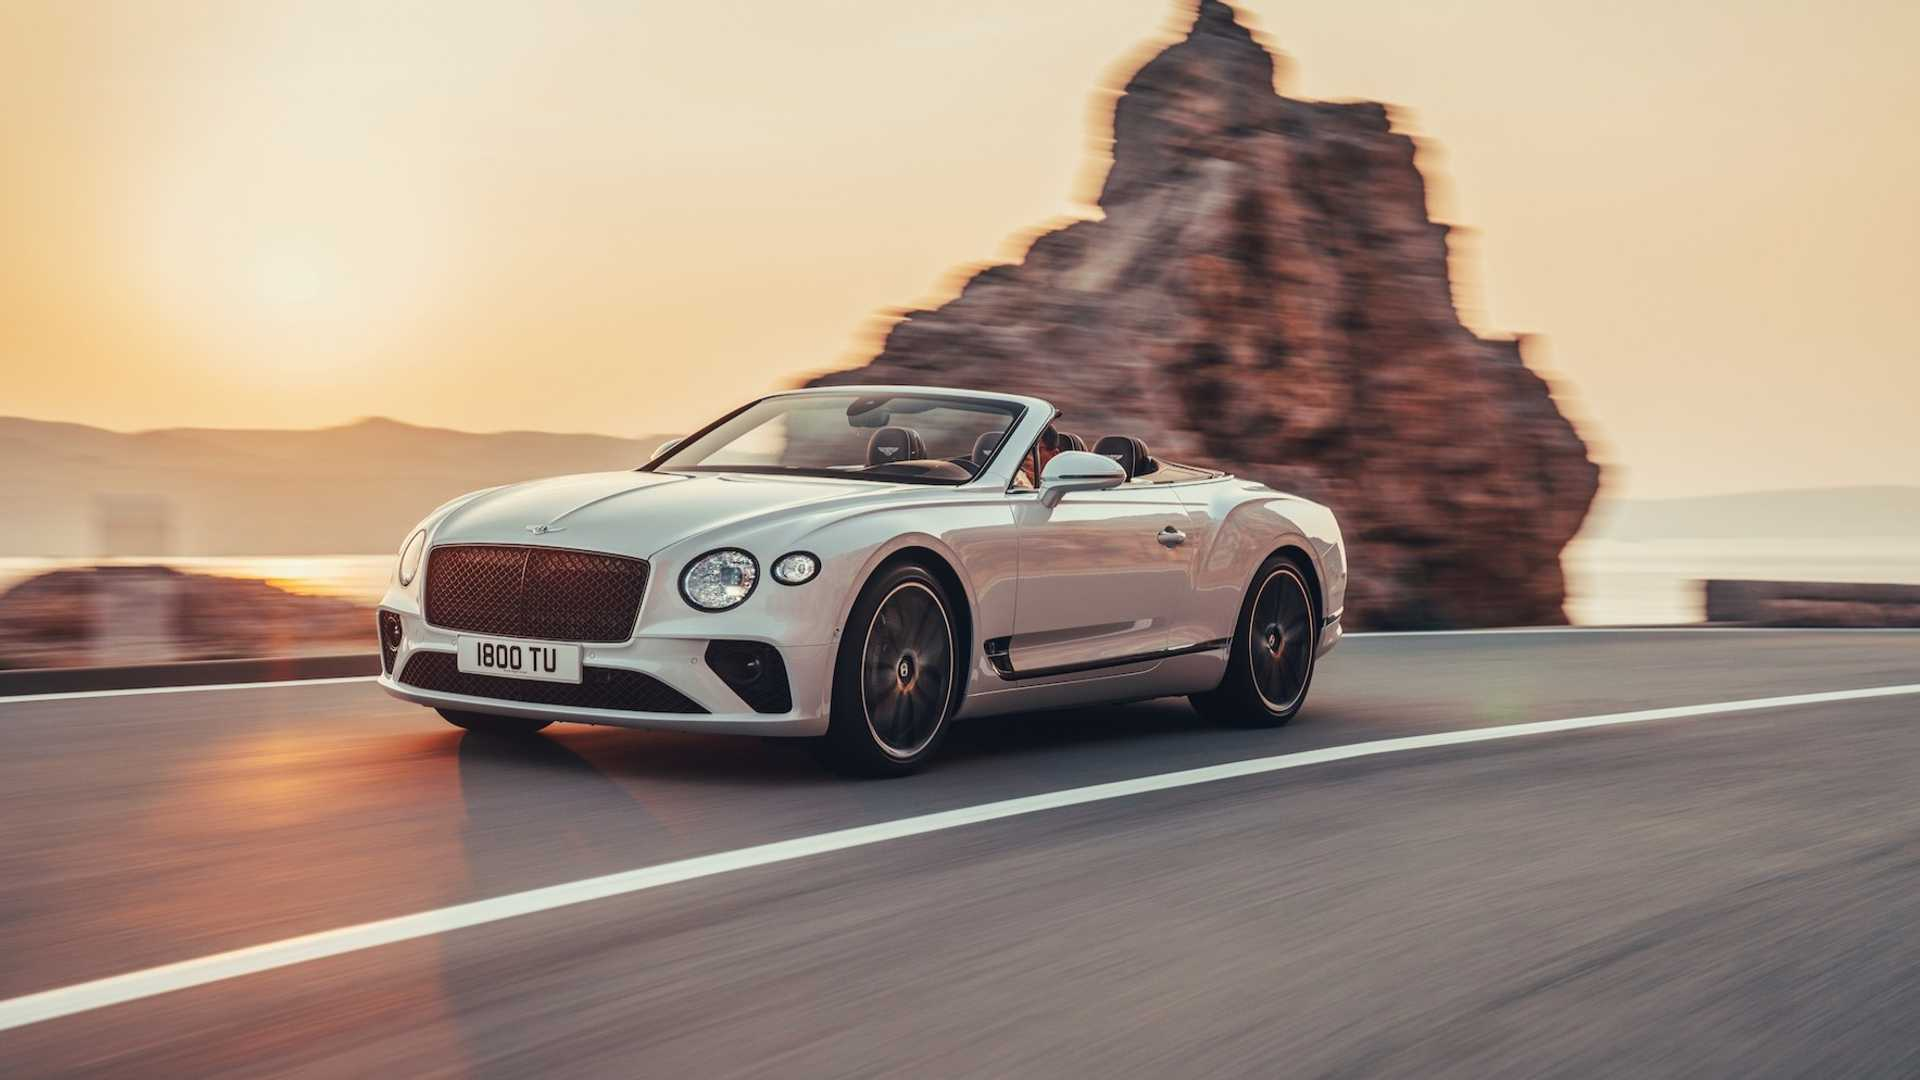 2019-bentley-continental-gt-convertible-unveiled-207-mph-luxury-droptop (3)